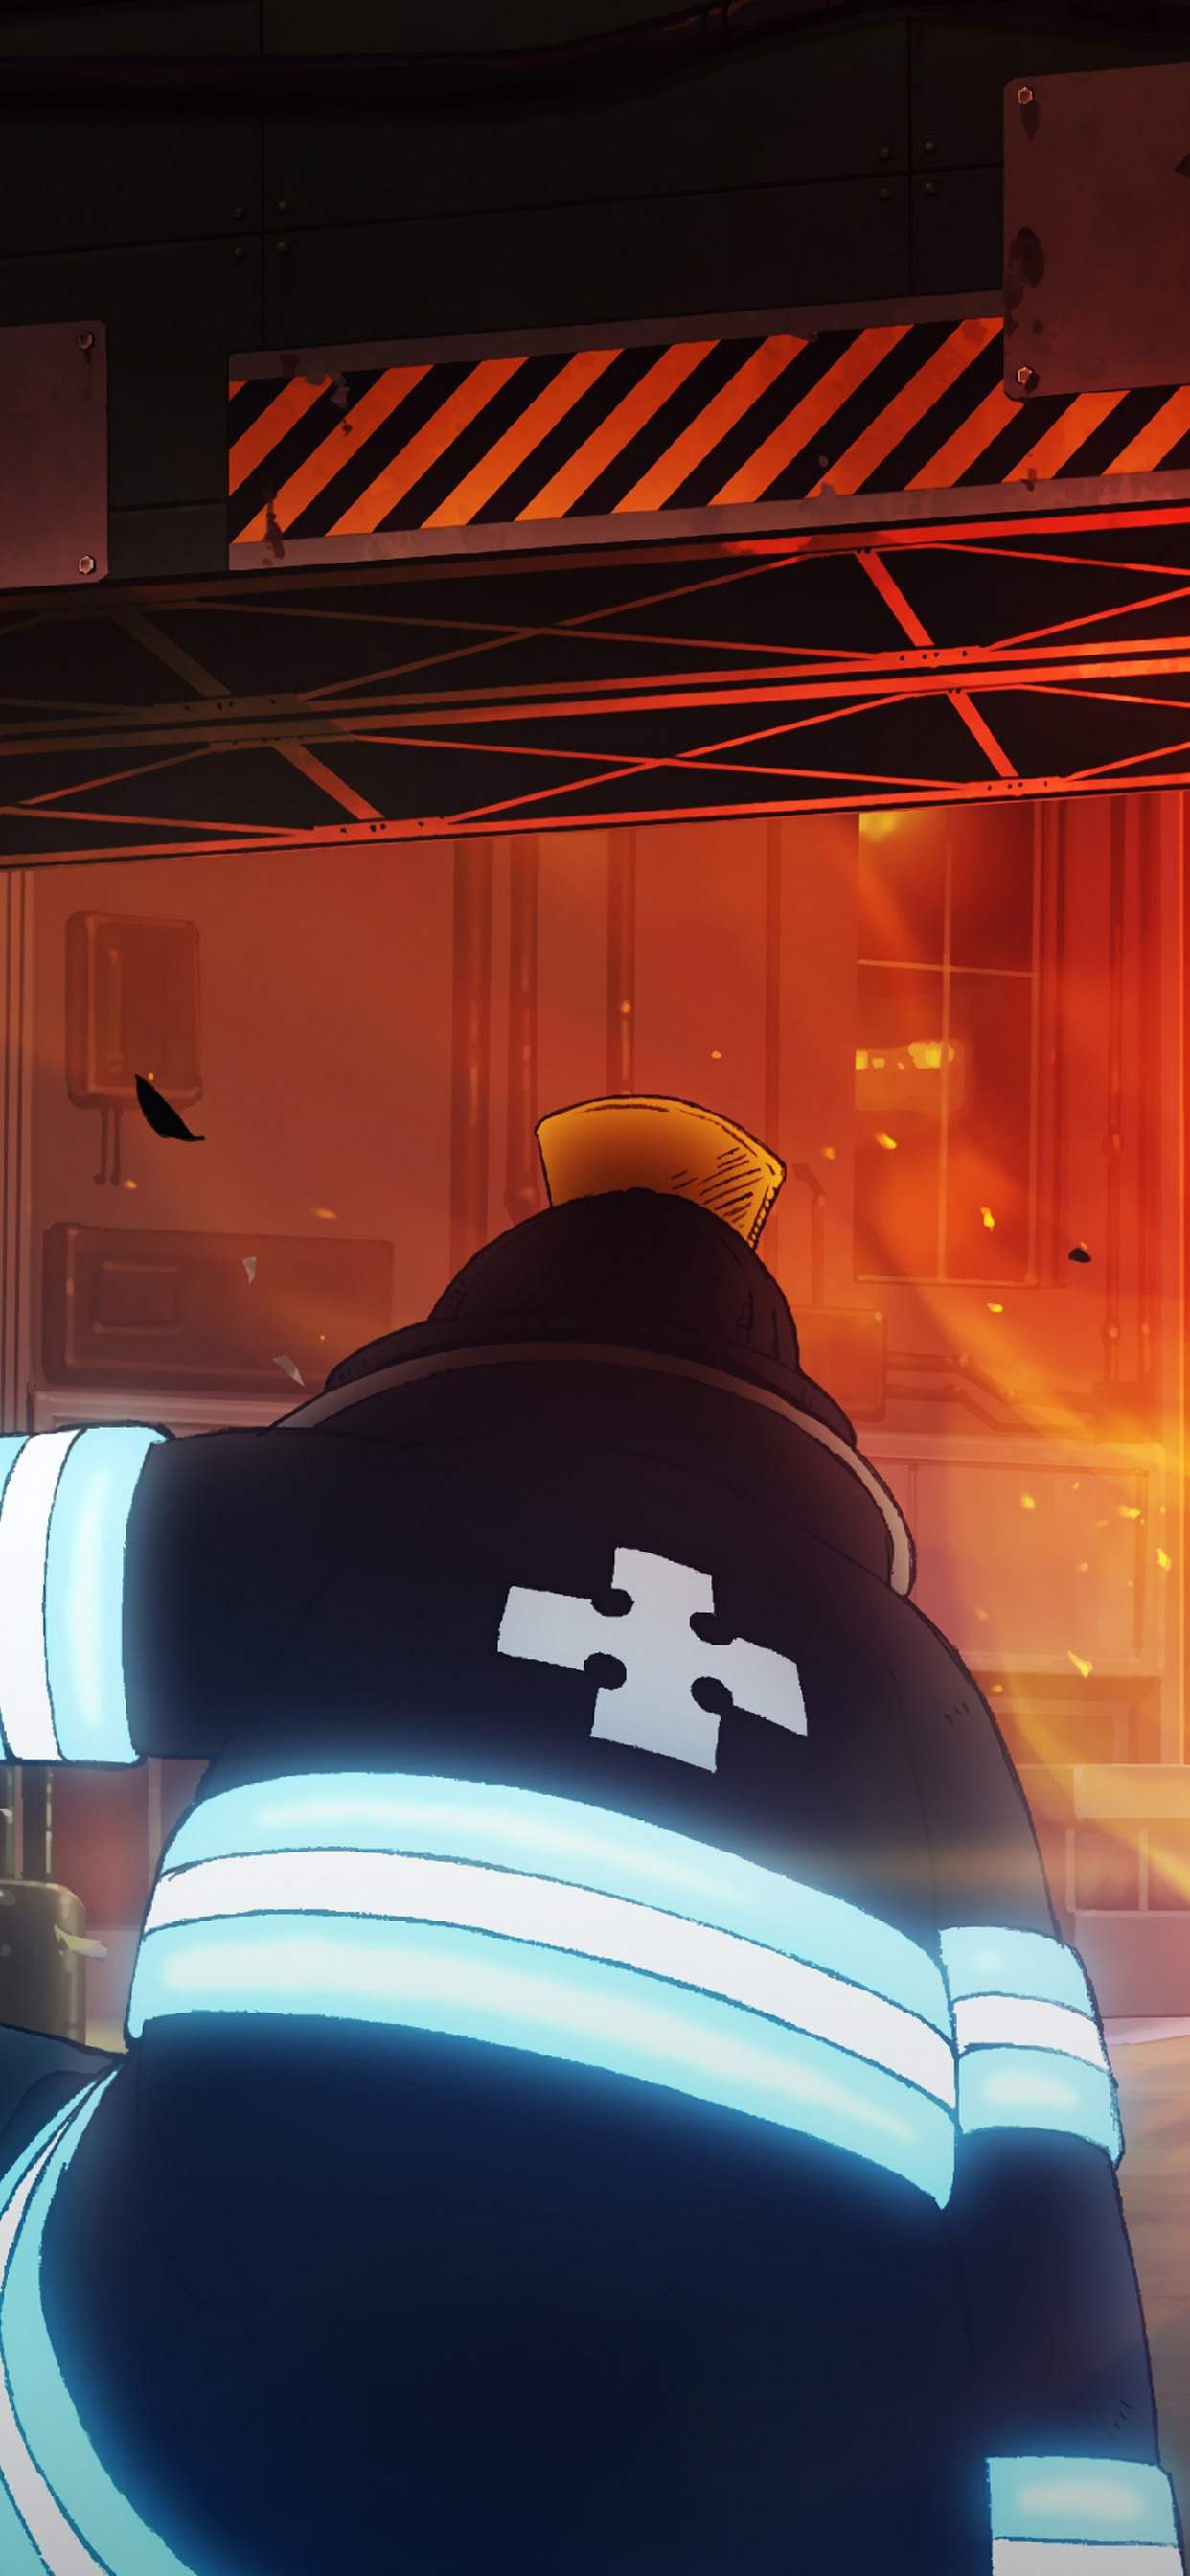 Fire Force Anime 4k Wallpaper 20 Here are only the best fire wallpapers. fire force anime 4k wallpaper 20